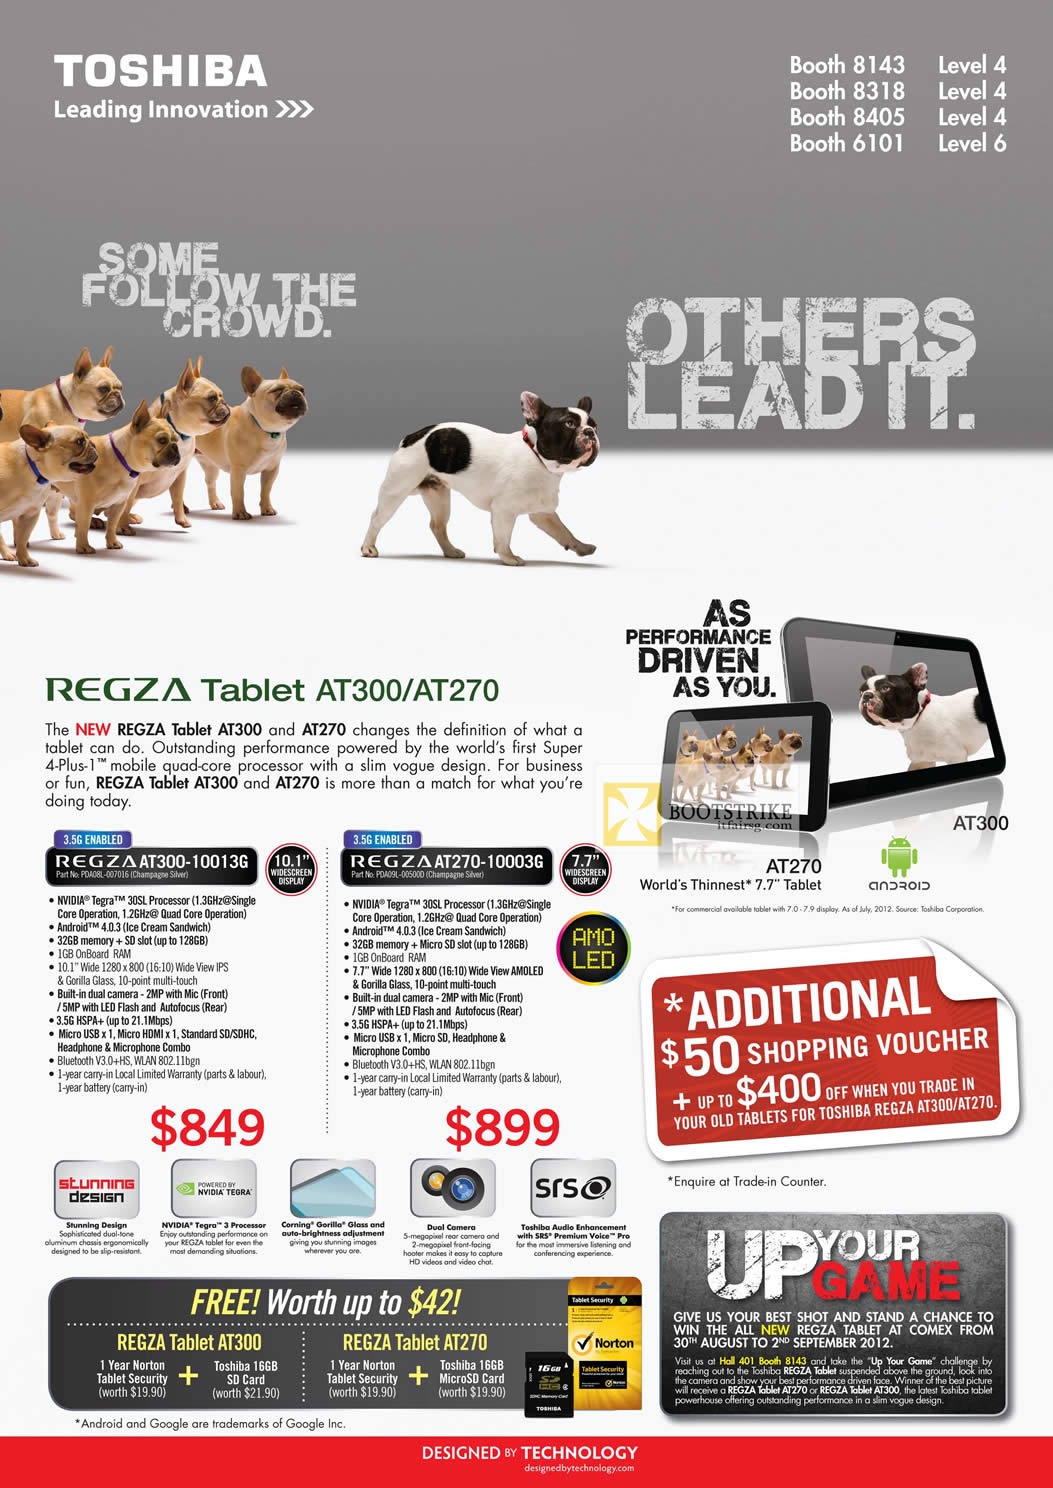 COMEX 2012 price list image brochure of Toshiba Tablets Regza AT300-10013G, AT270-10003G